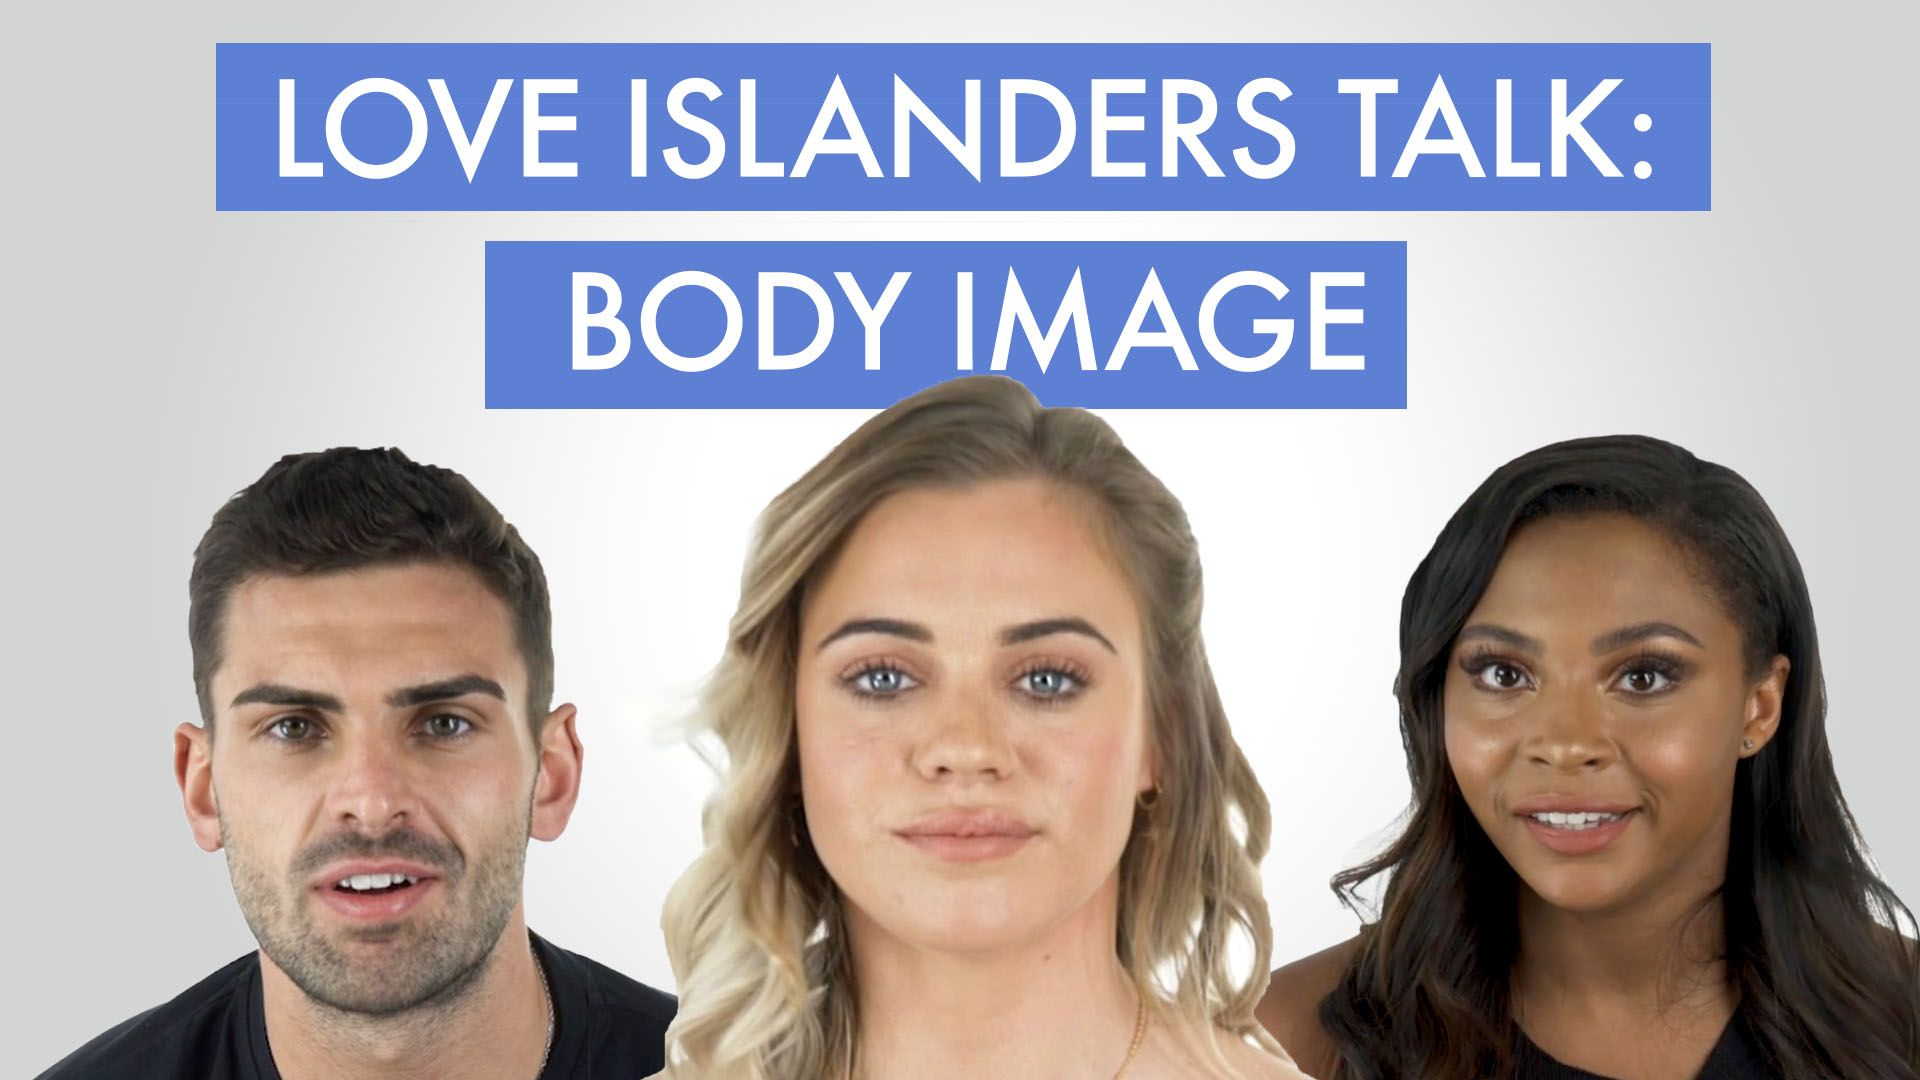 Love Islanders open up about overcoming body image issues in the public eye